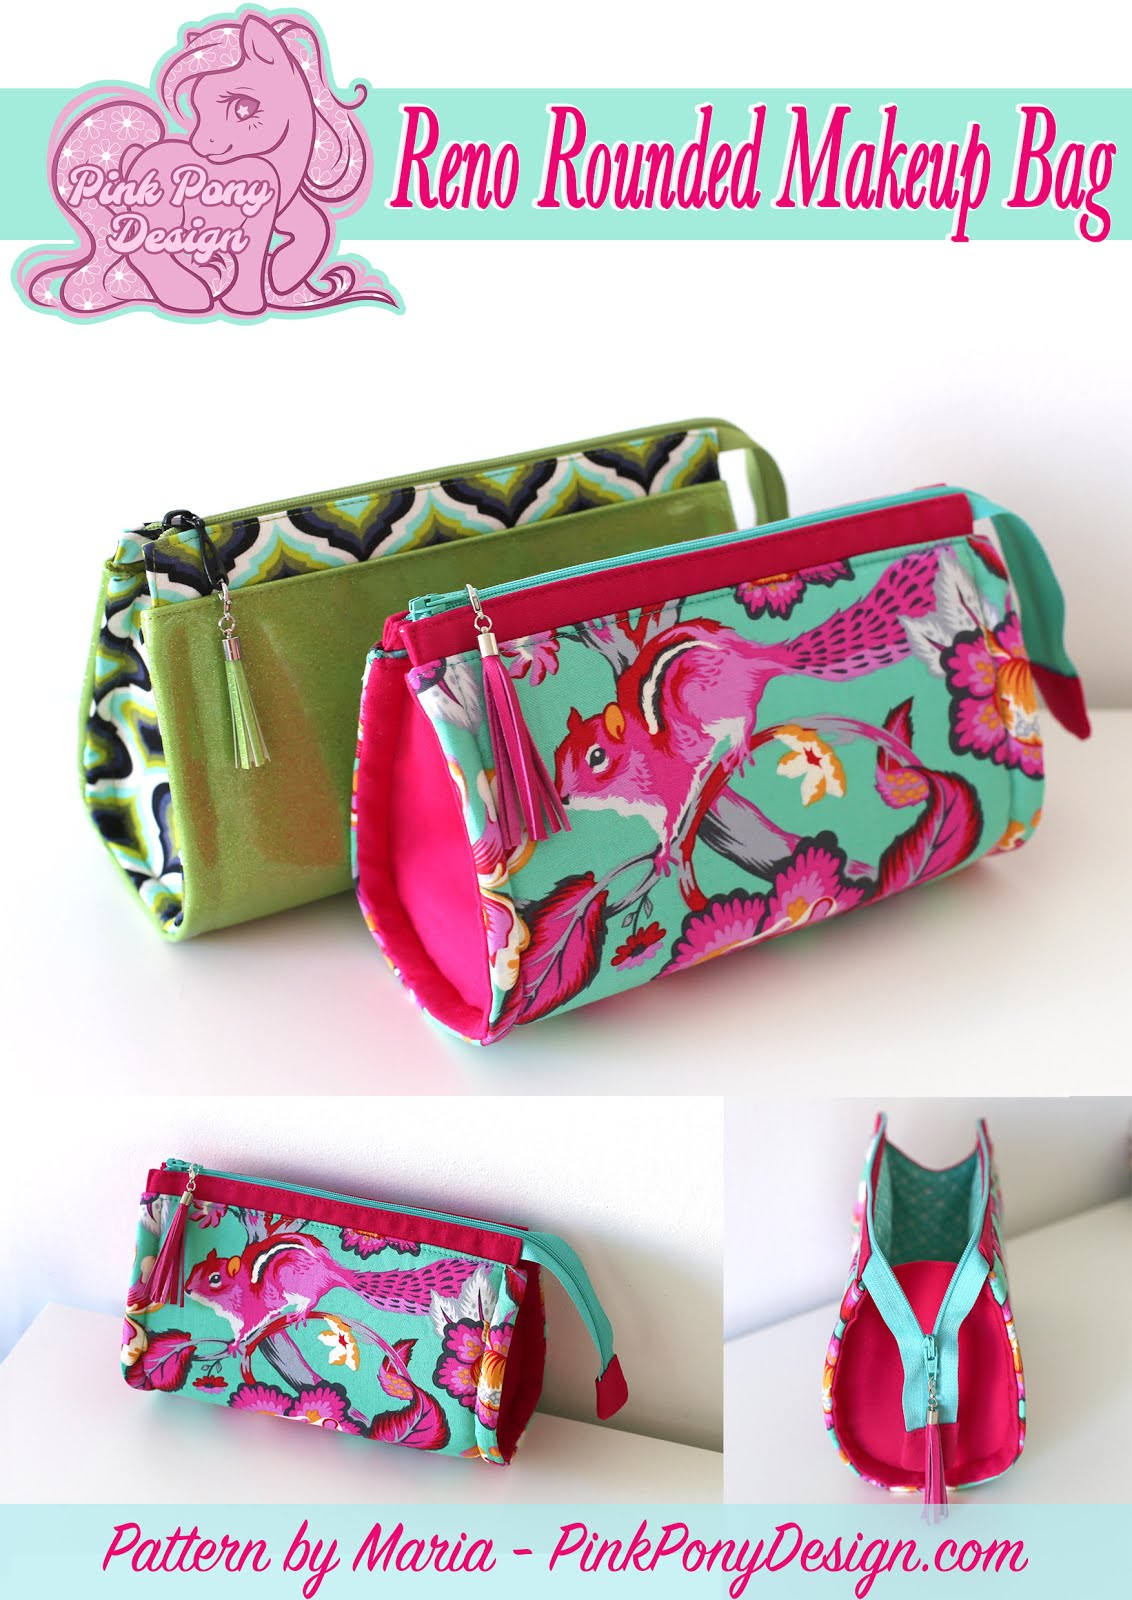 Reno Rounded Makeup Bag